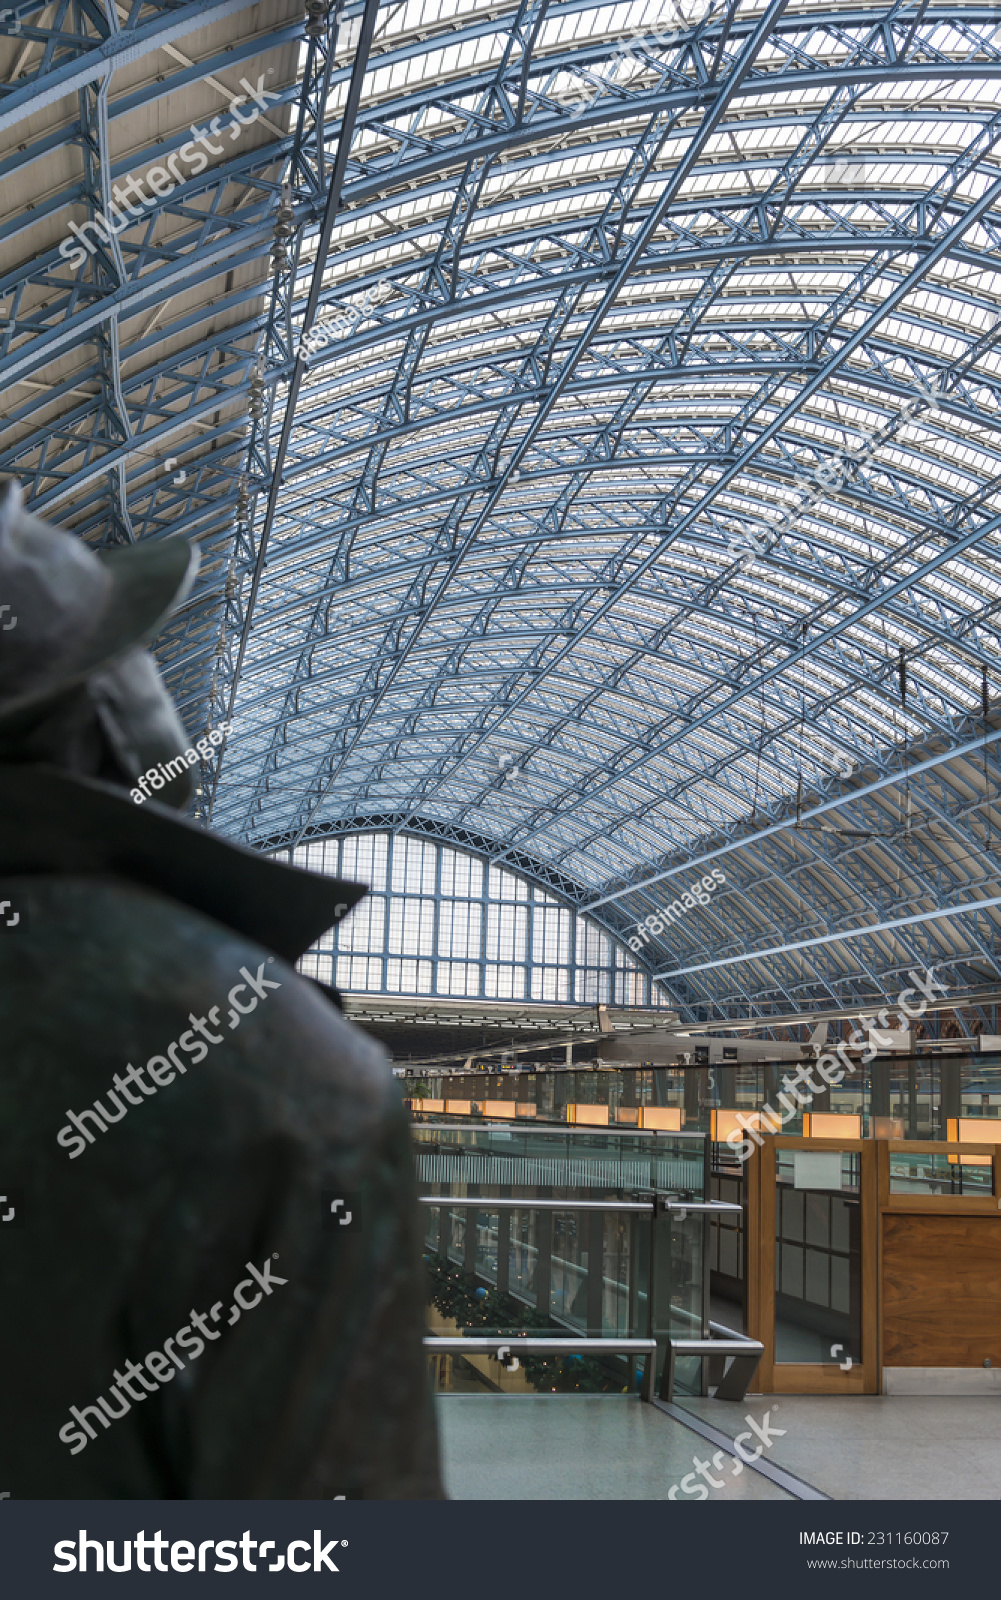 LONDON UK - OCTOBER 15 The canopy of St Pancras International station in London & London Uk October 15 Canopy St Stock Photo 231160087 - Shutterstock